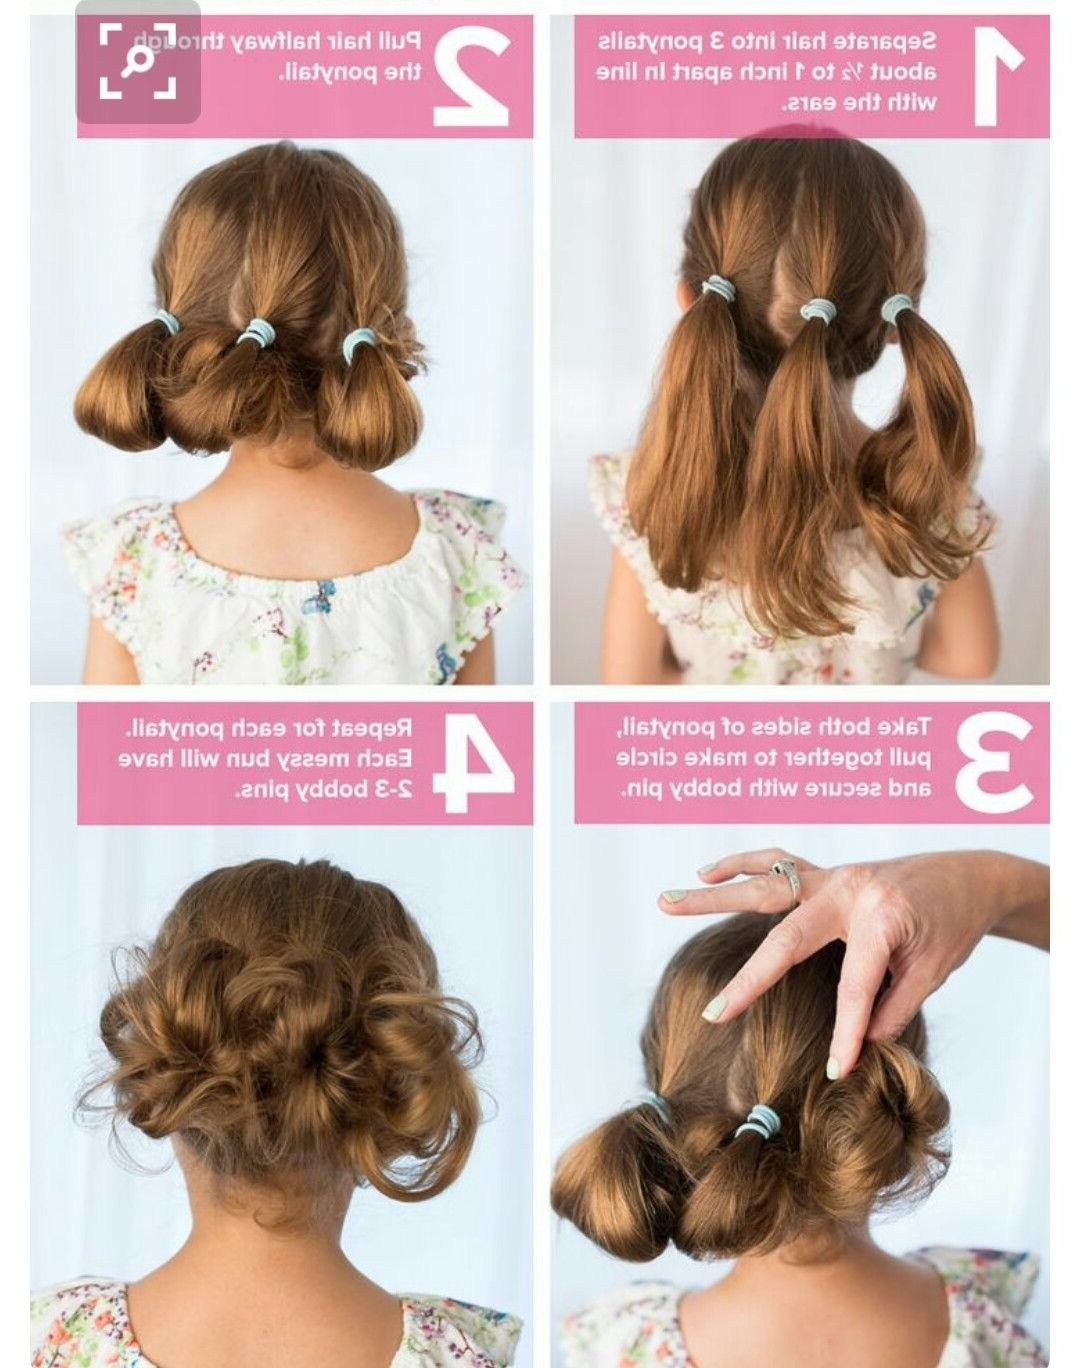 Strange Little Buns | Strange Flowers | Pinterest | Hair Style, Girl Throughout Children's Updo Hairstyles (View 13 of 15)